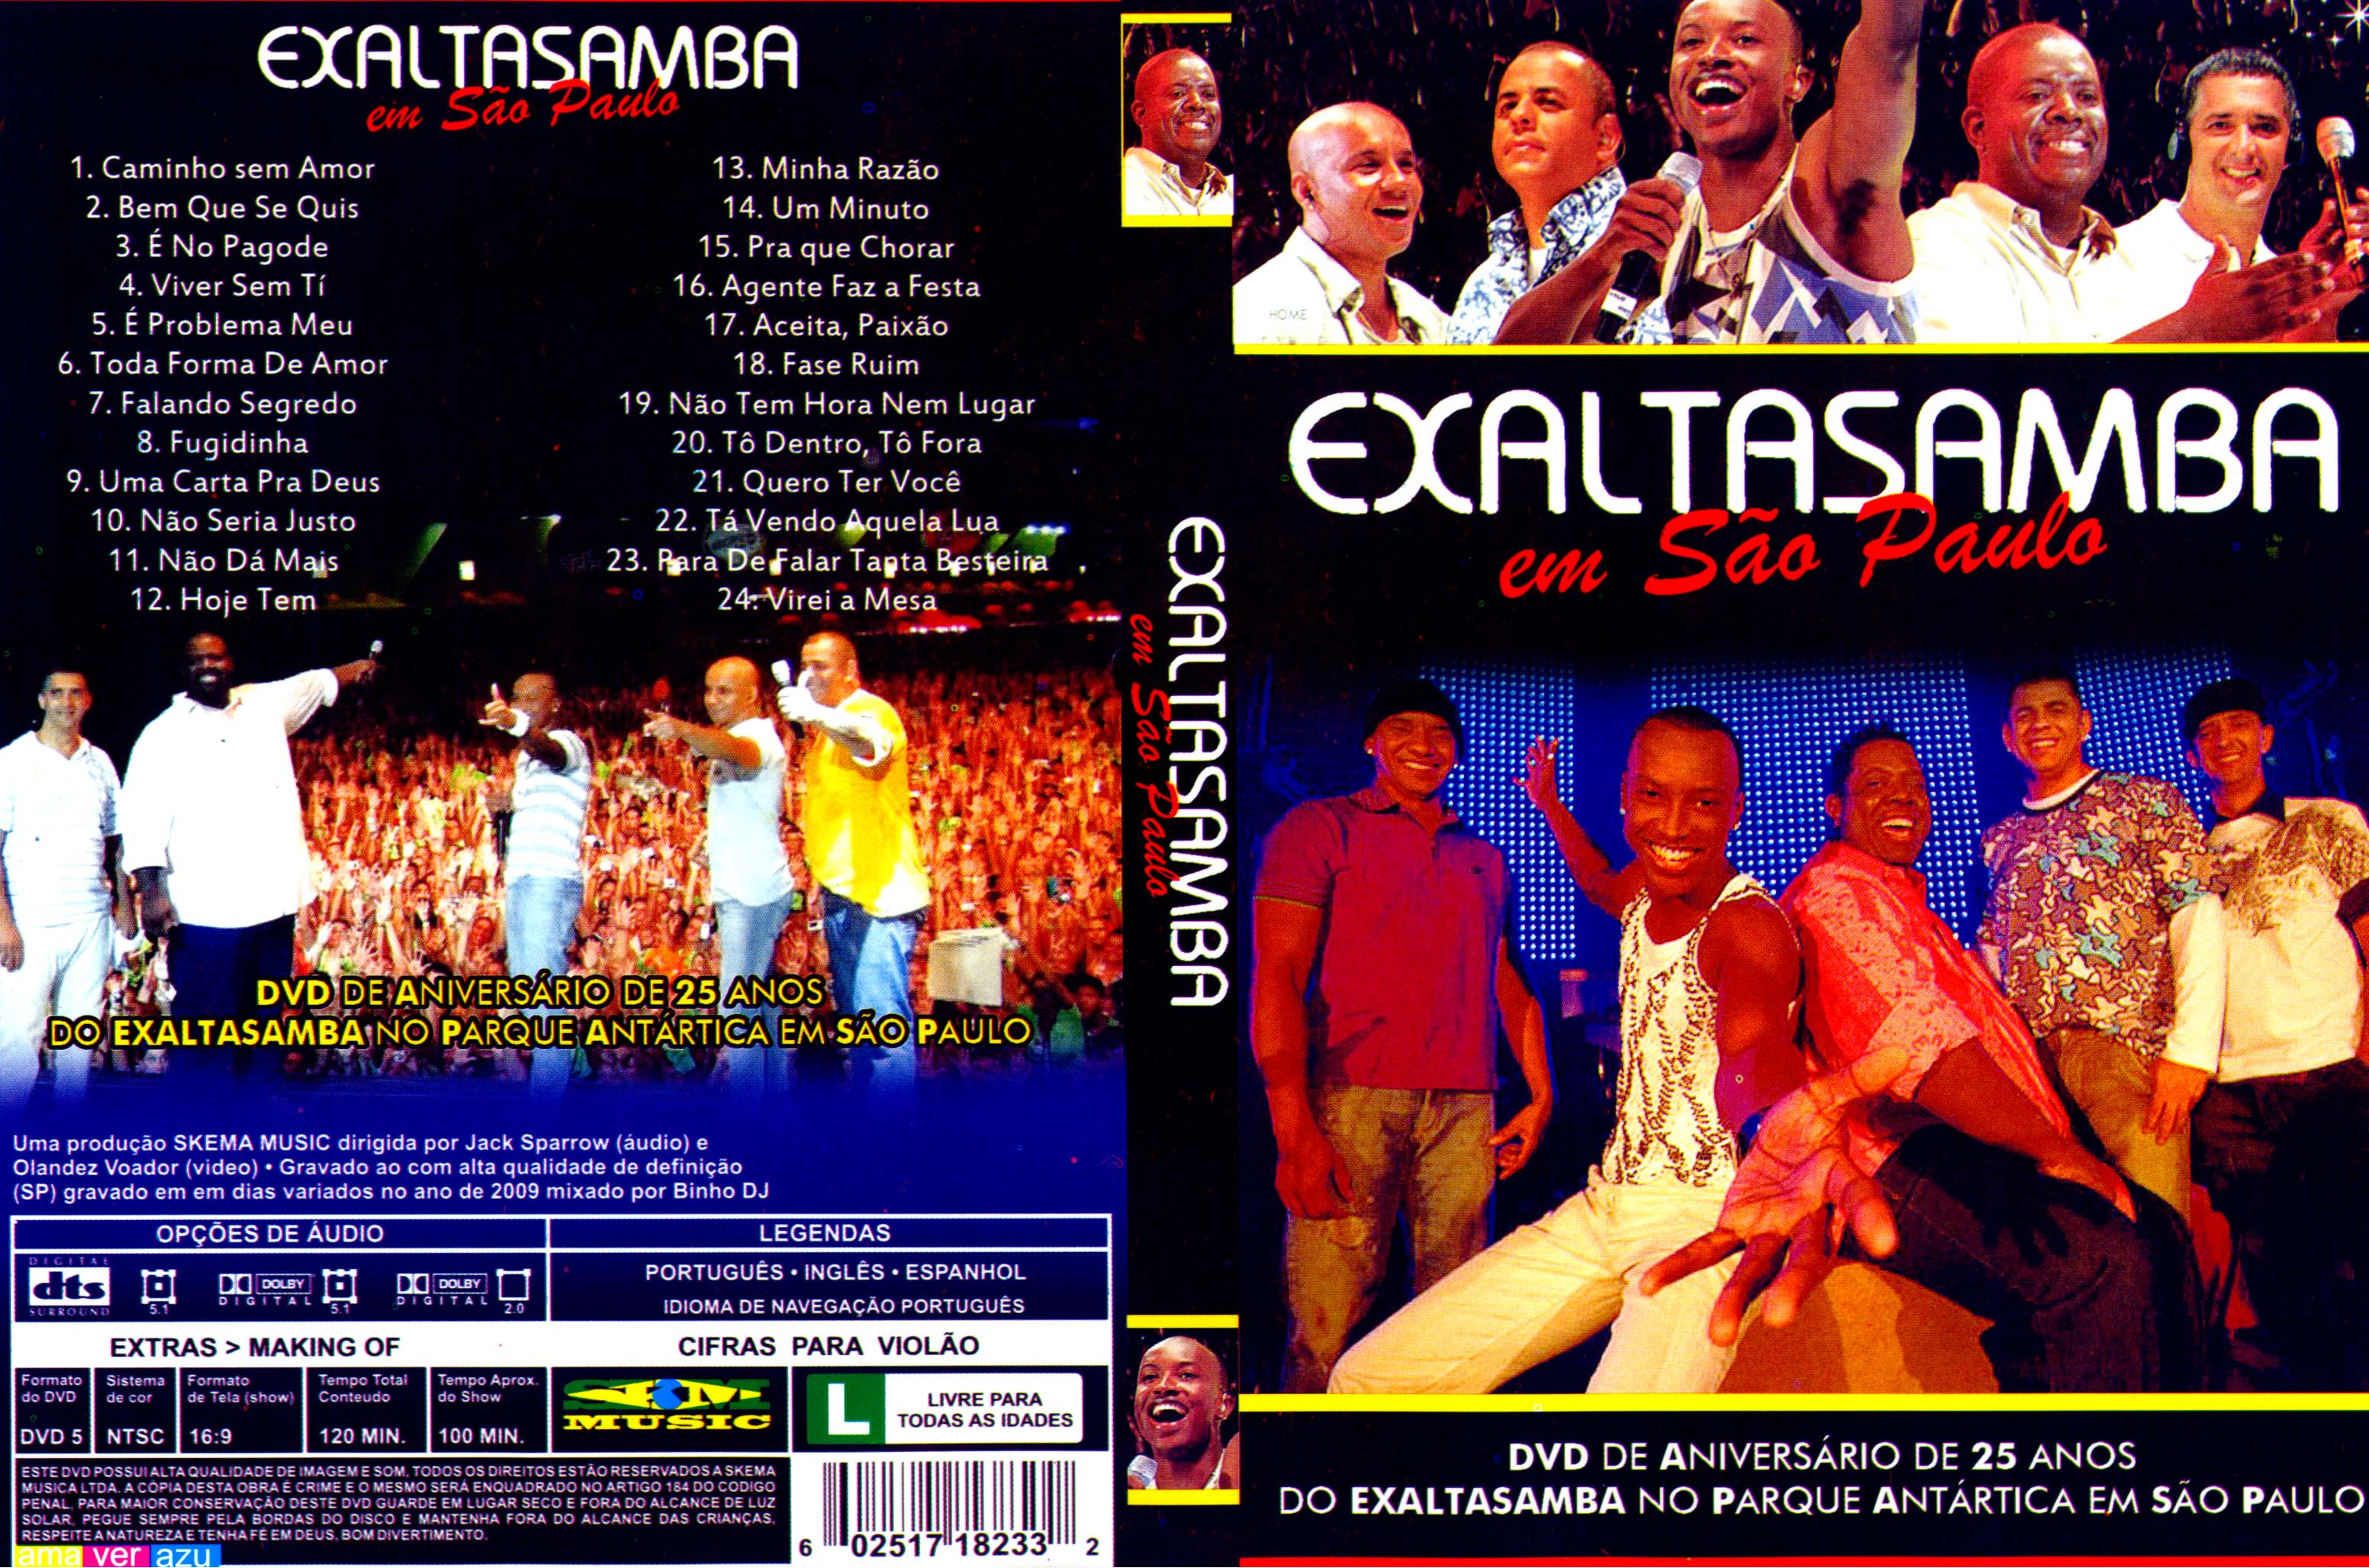 dvd do exaltasamba 2010